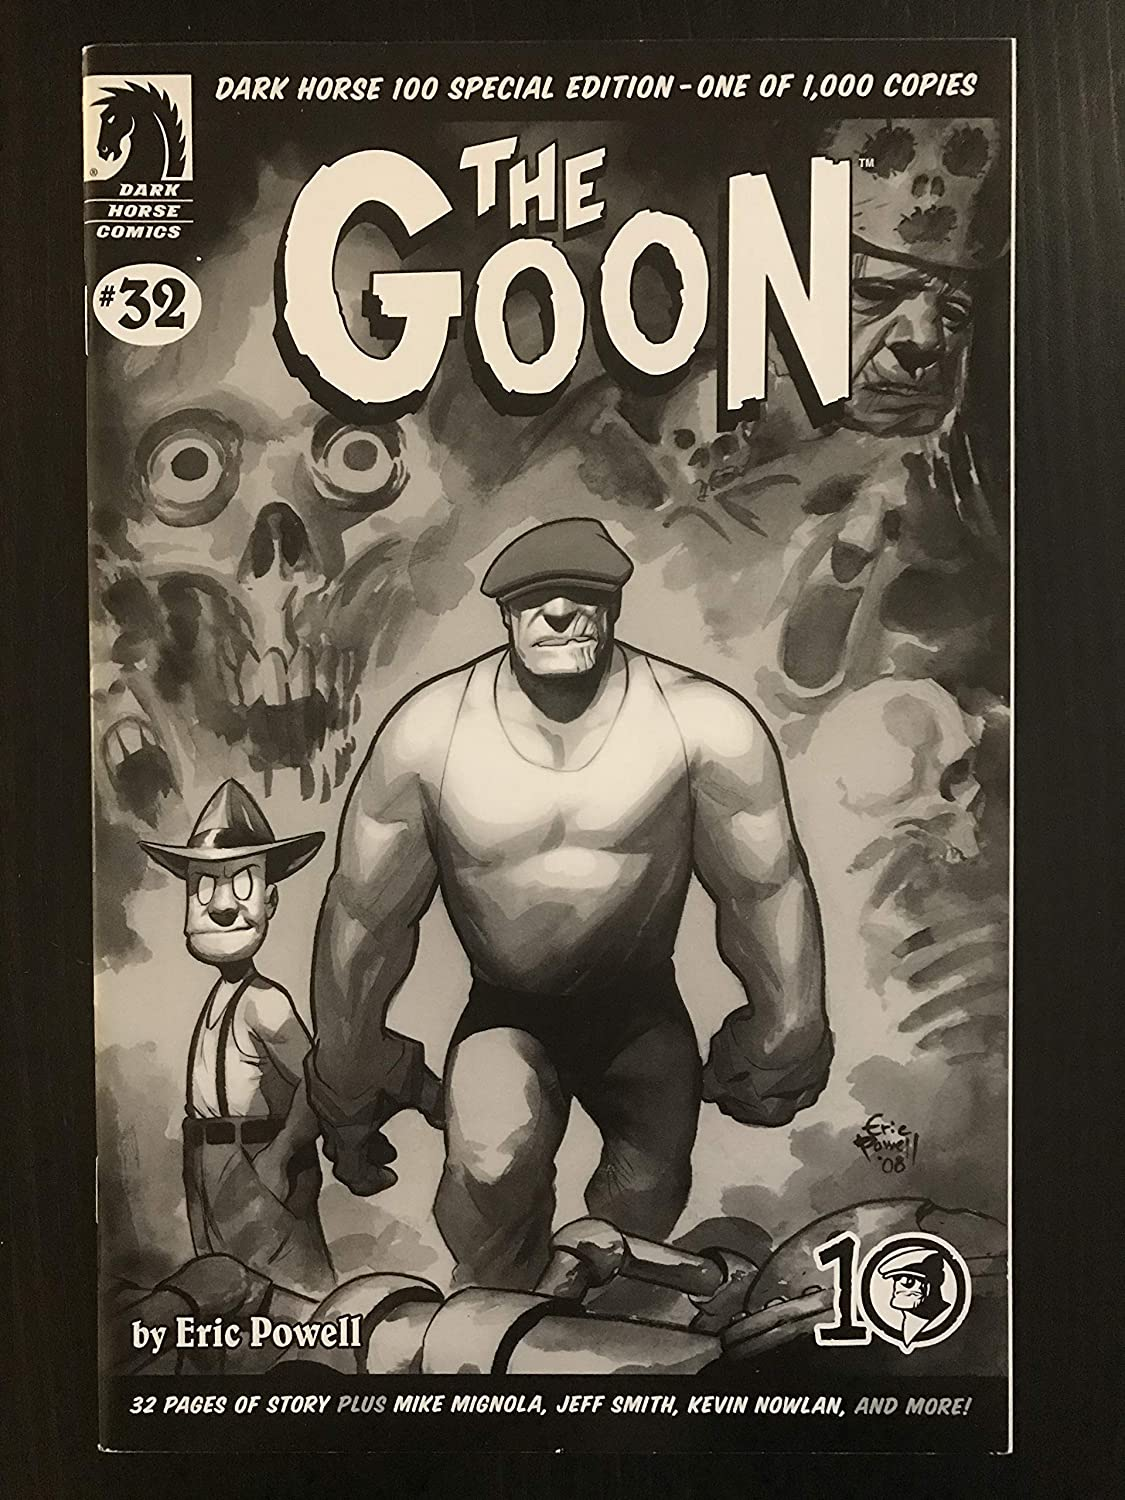 Goon #32 2003 Variant Dark Horse Columbus Mall Comic 1 000 Book c Only security